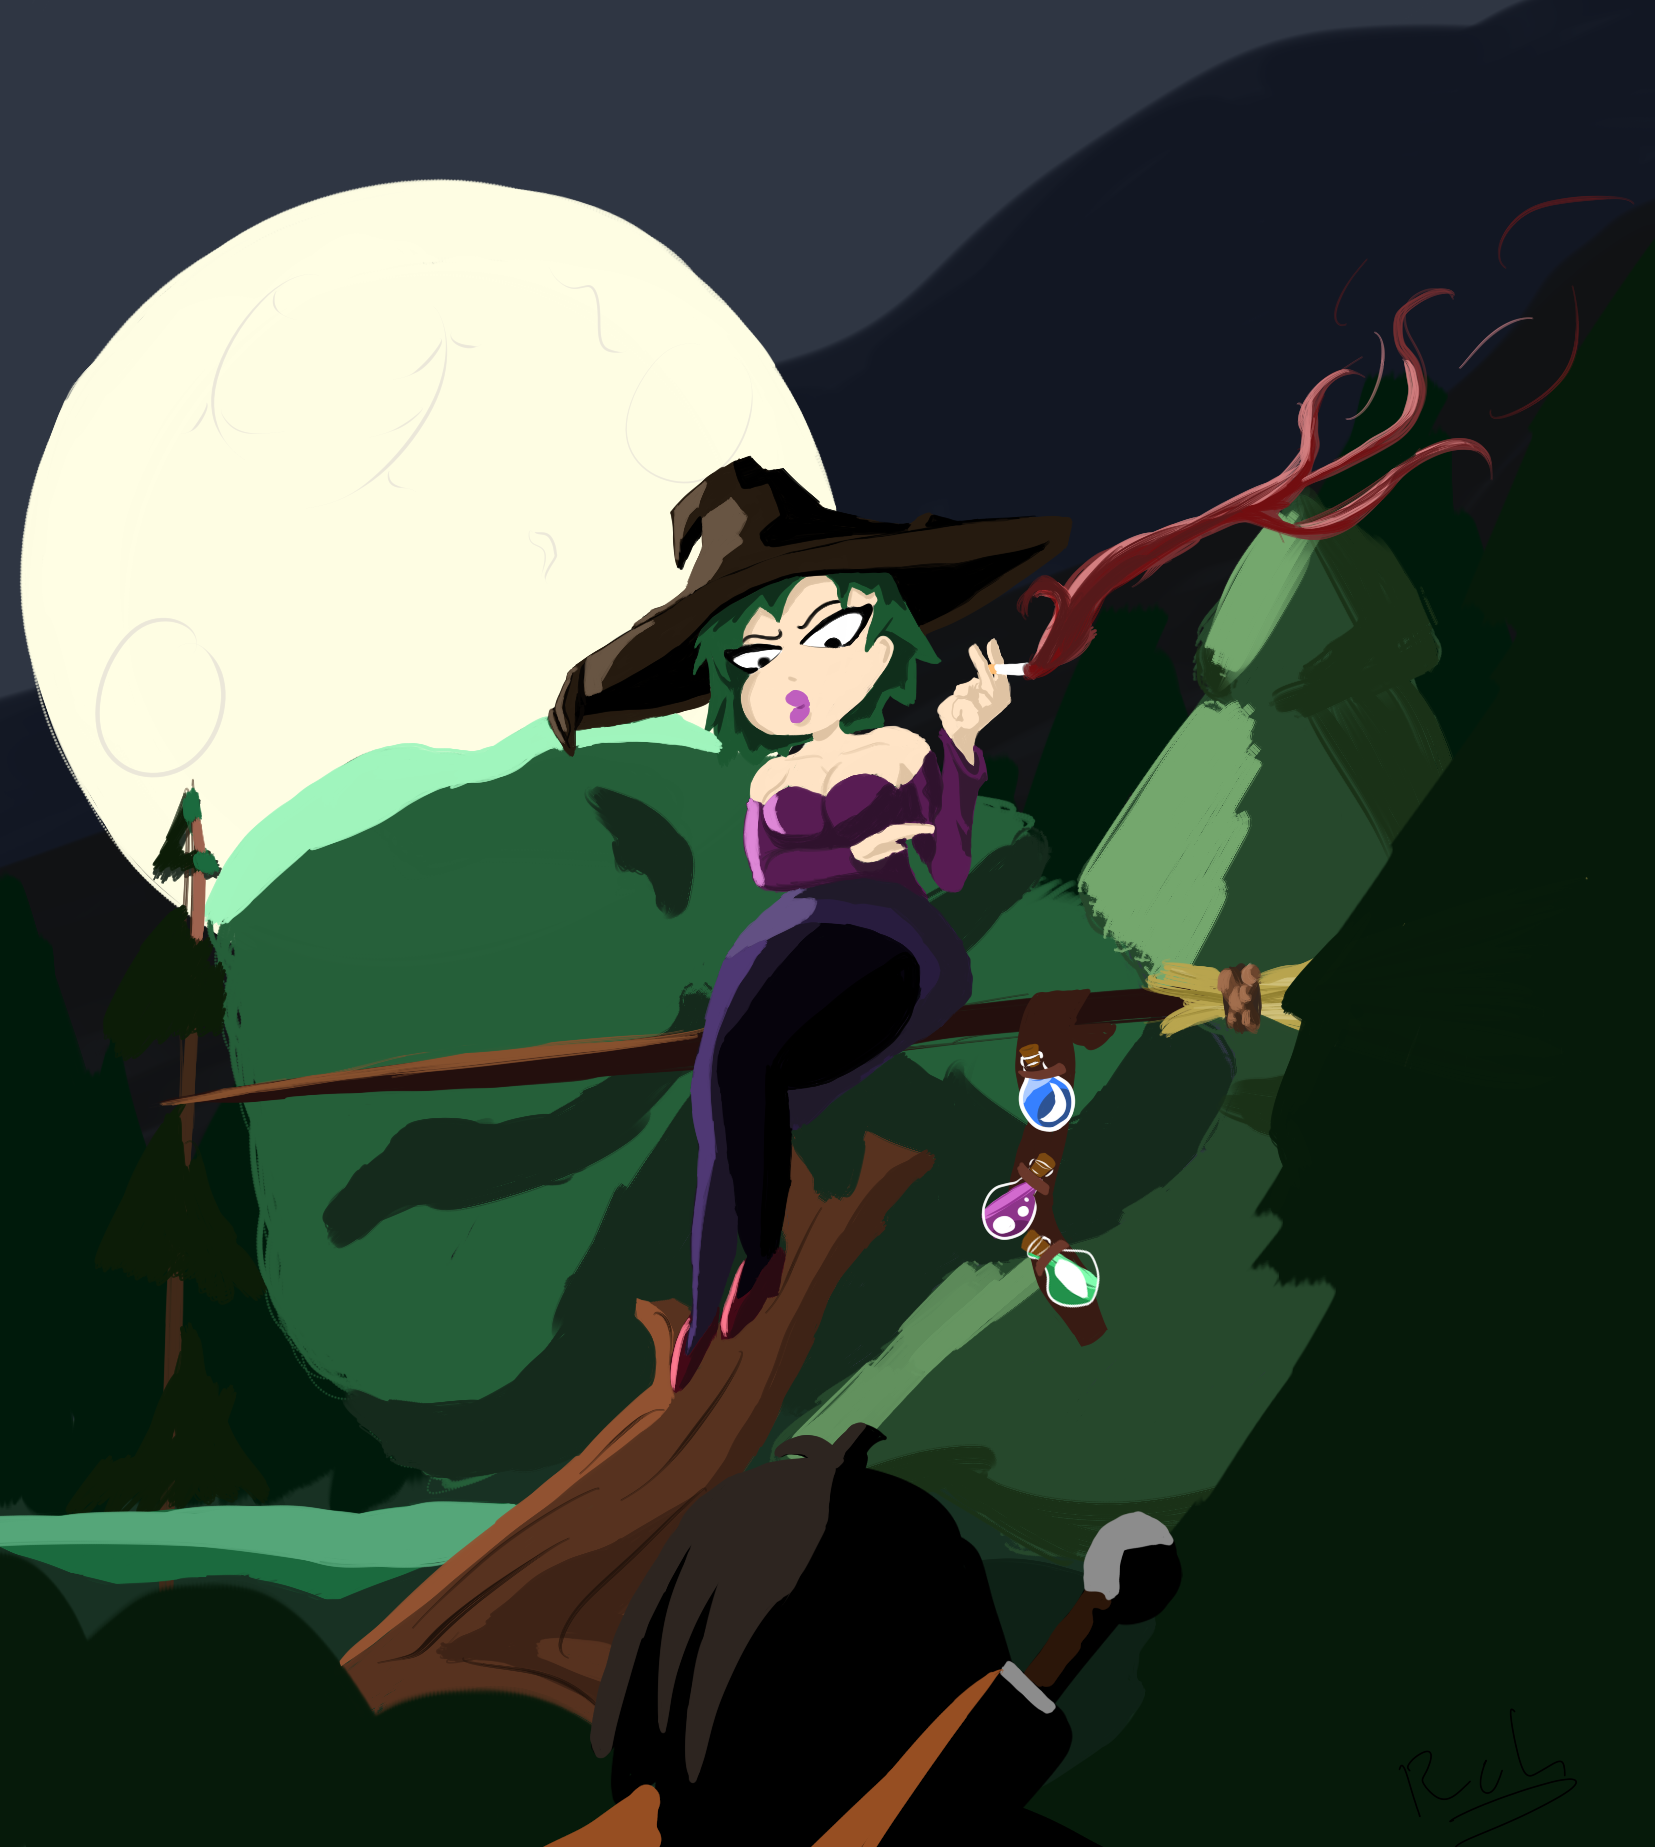 A midnight witch